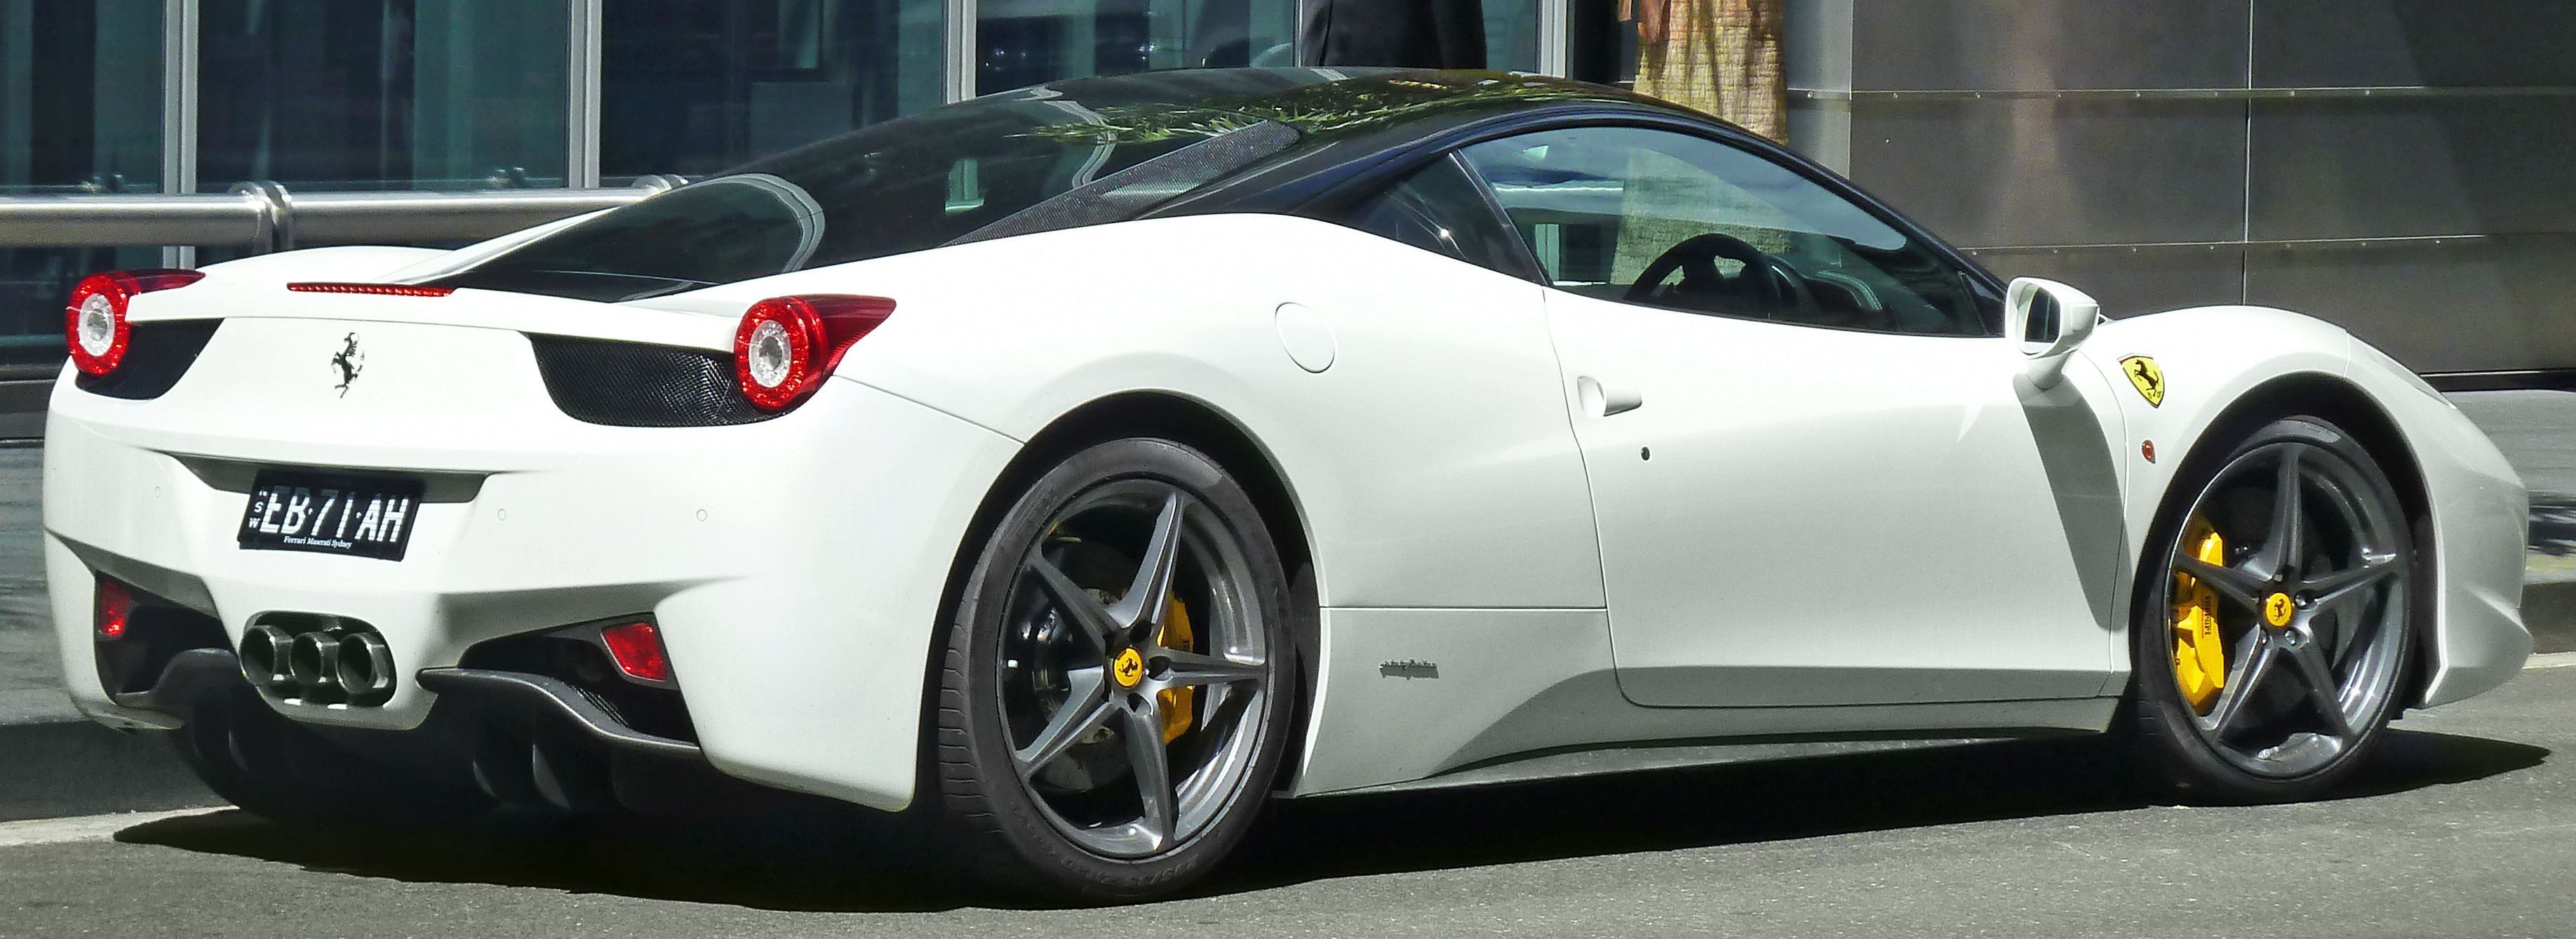 1000 images about cars on pinterest beautiful miami and los ferrari 458 italia coupe white center car photo pinterest coupe ferrari and italia vanachro Gallery